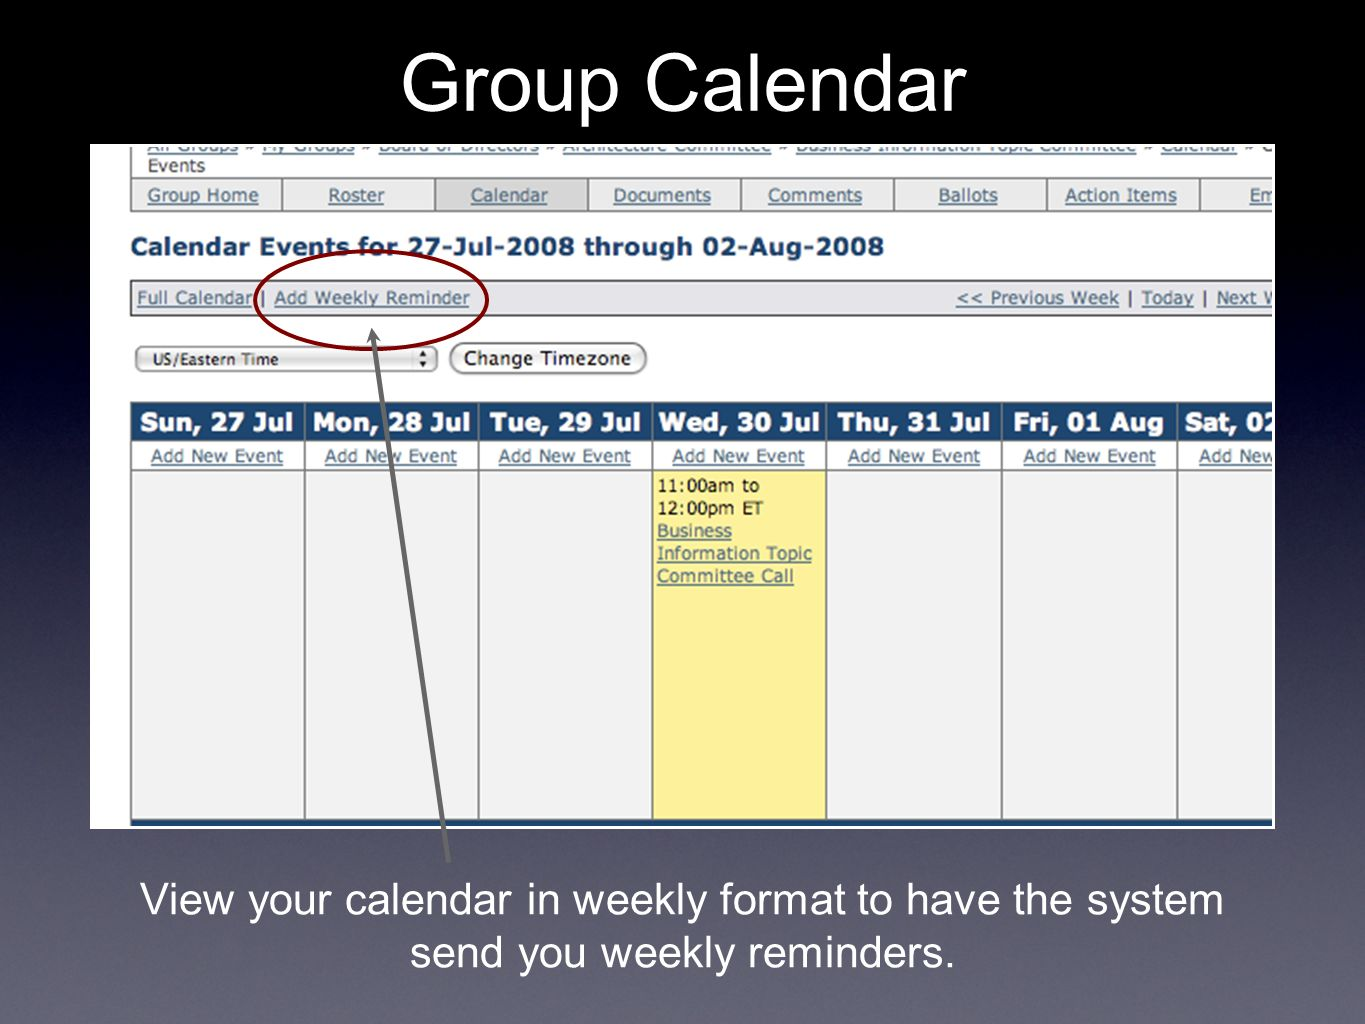 View your calendar in weekly format to have the system send you weekly reminders. Group Calendar